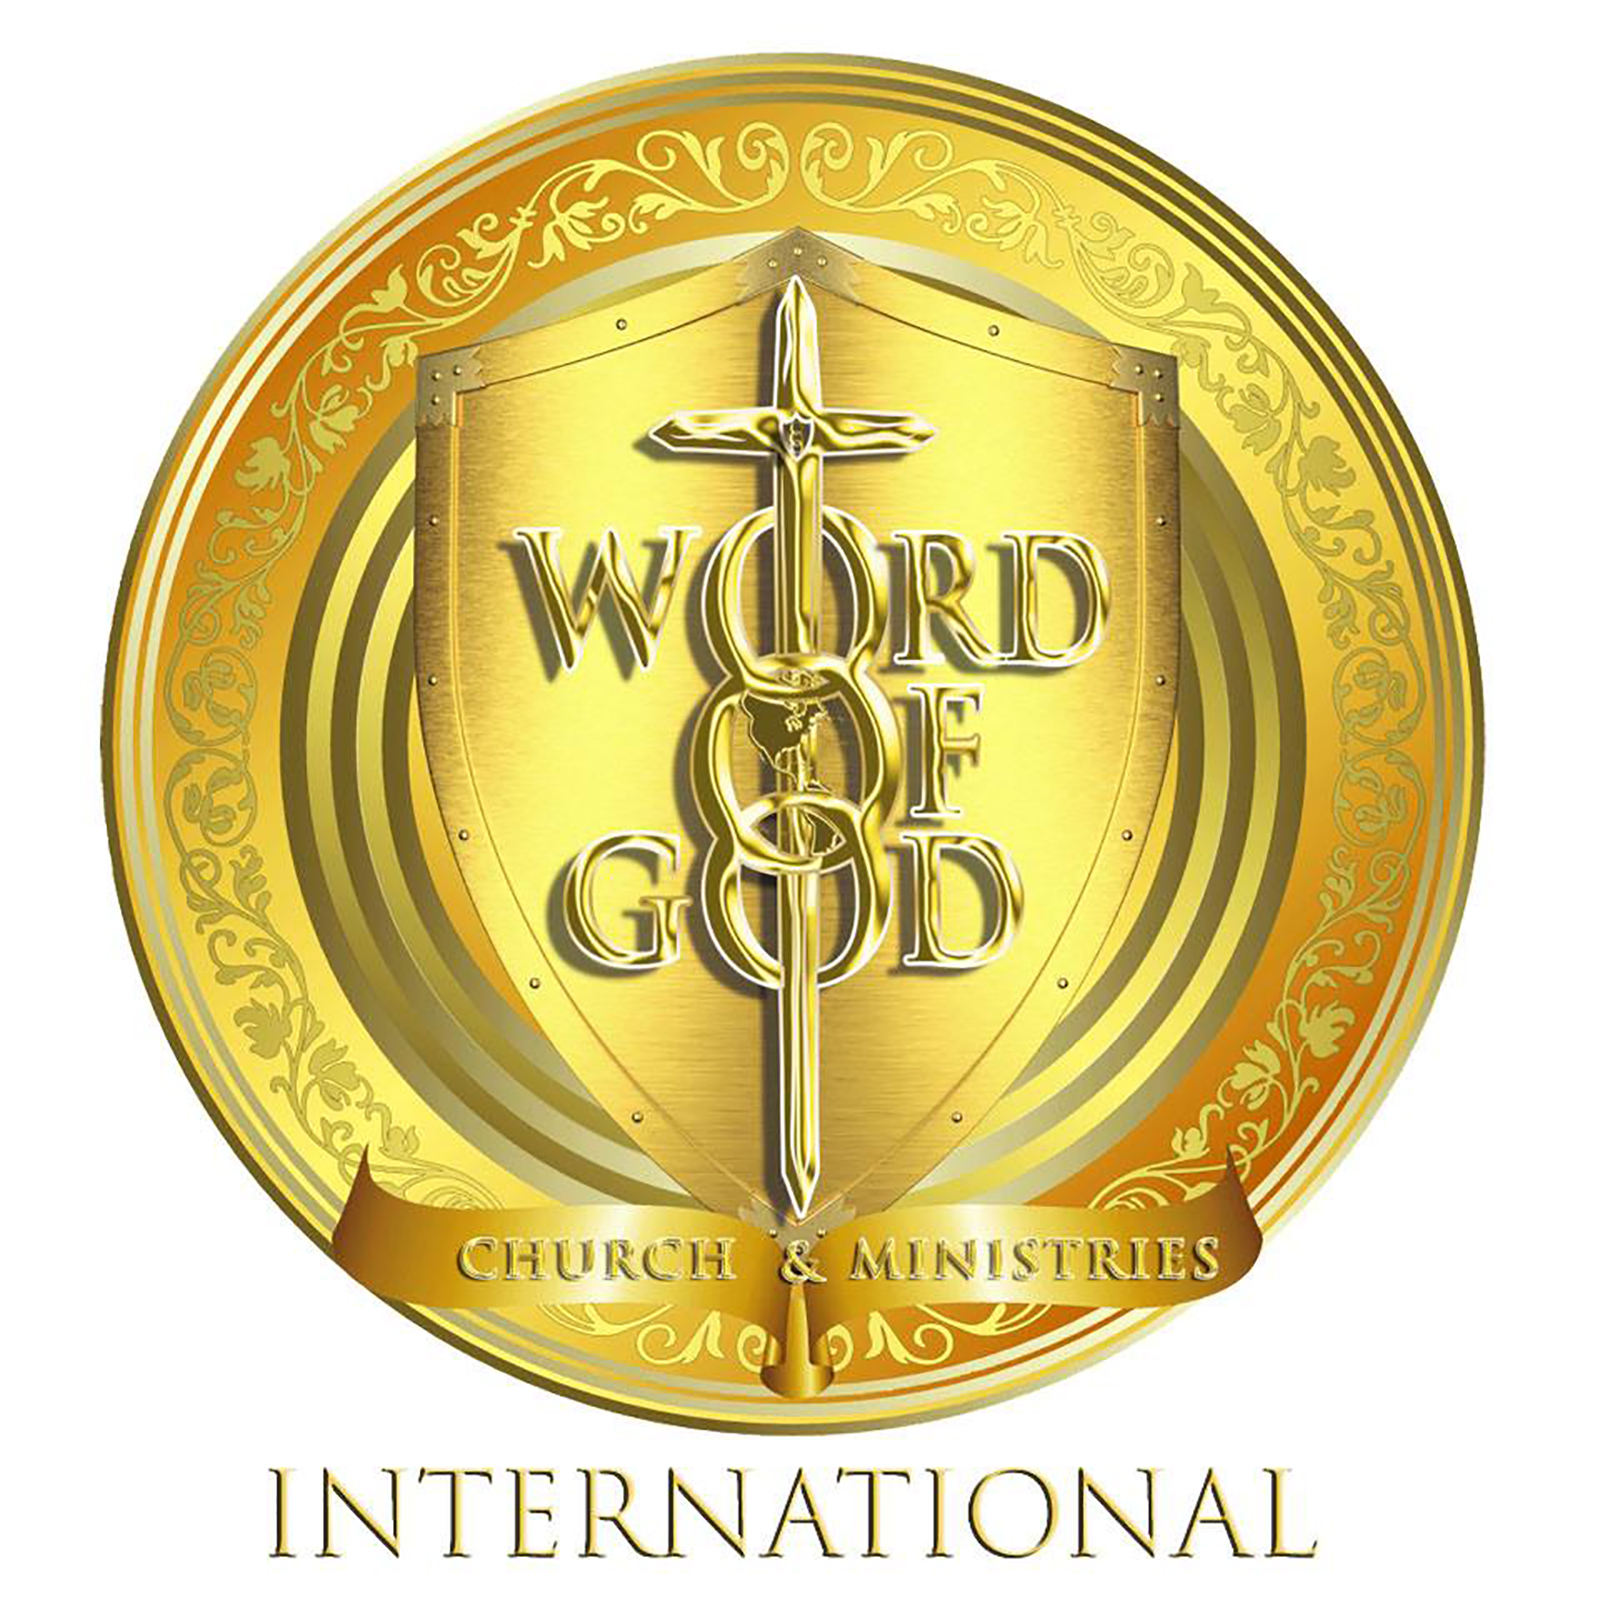 Word of God Church & Ministries International